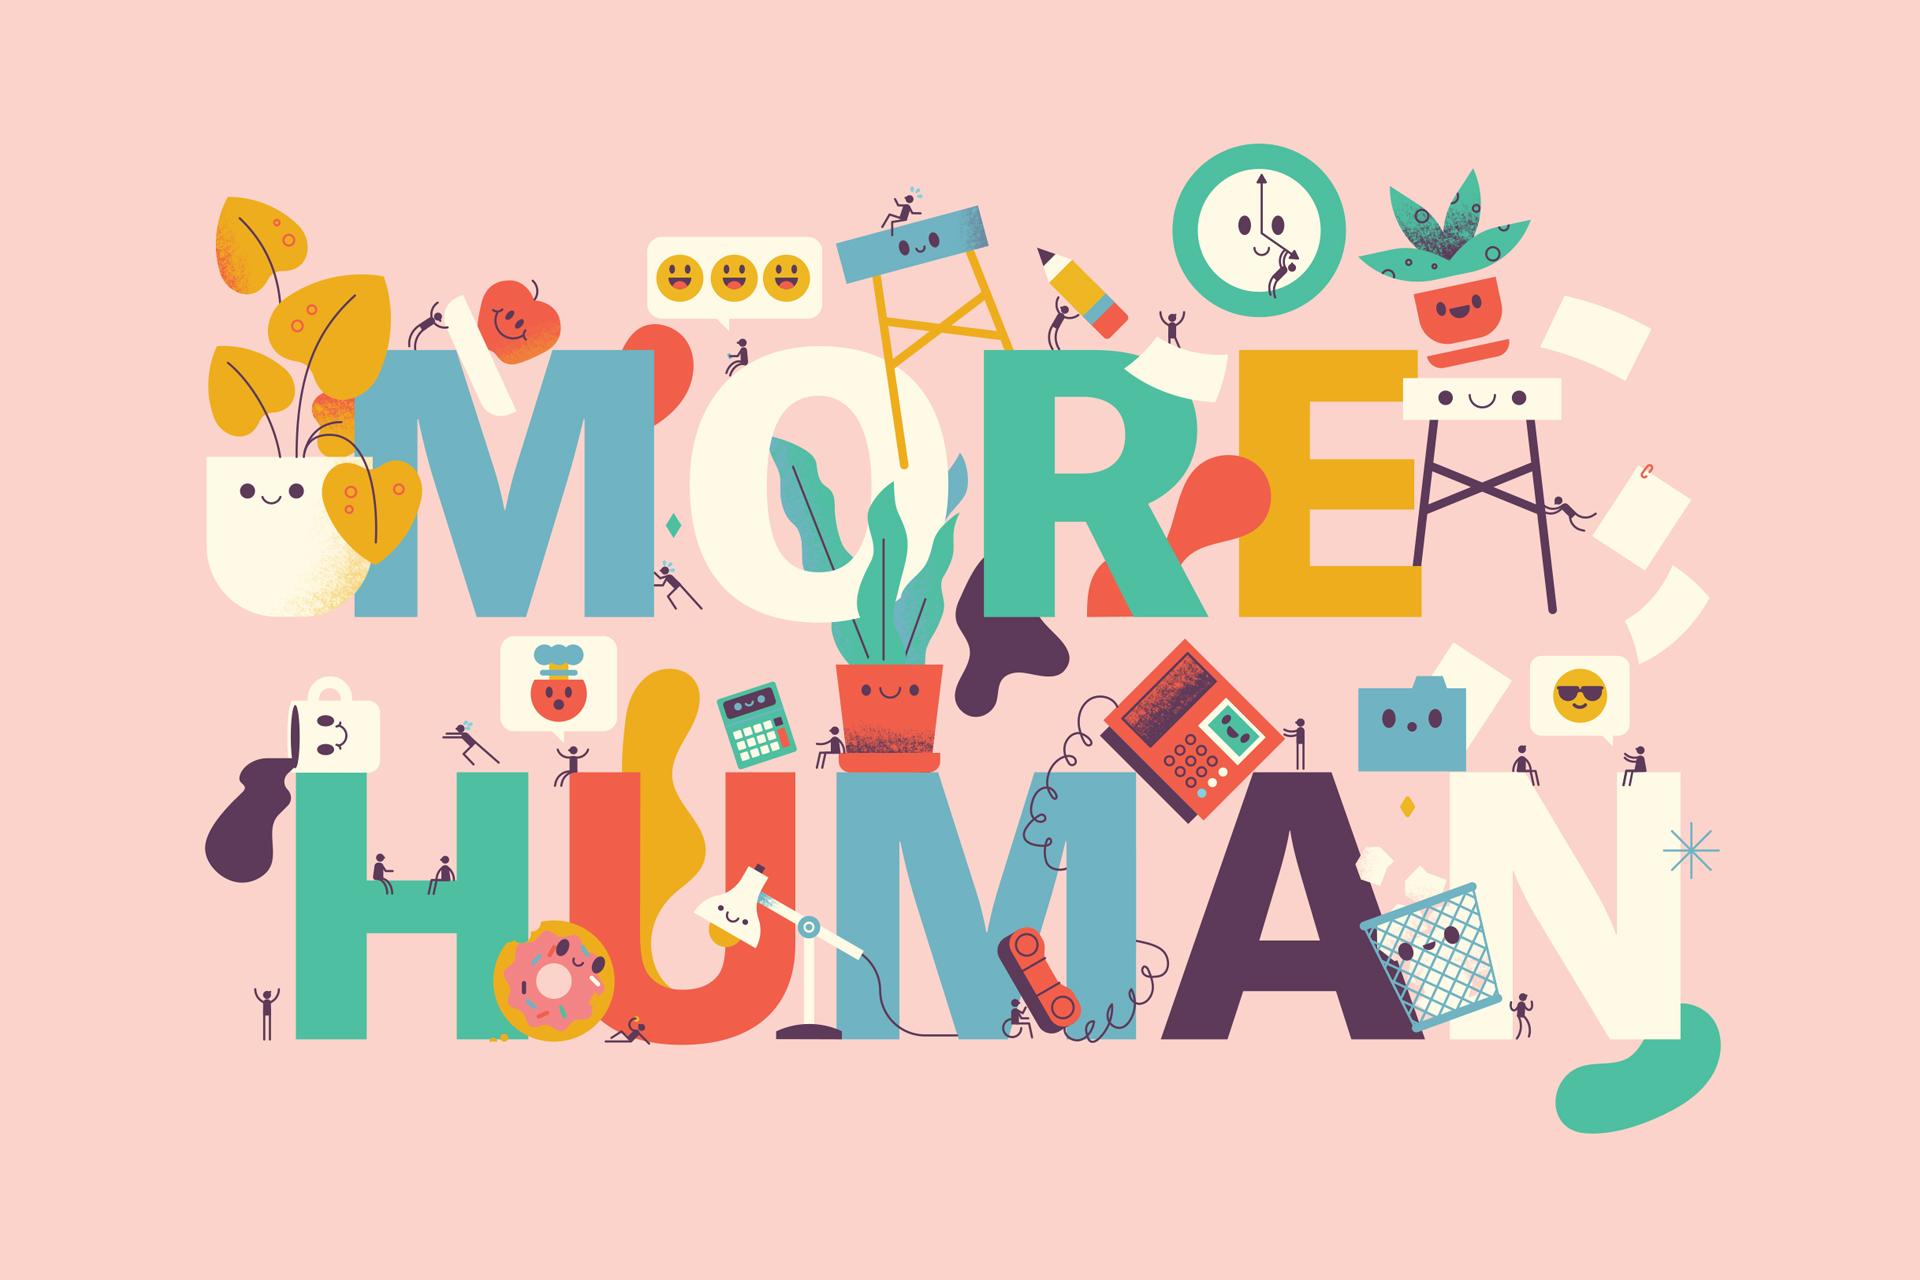 """Detail of """"make work more human"""" lettering and illustration by Skinny Ships for Channels Magazine by Slack"""